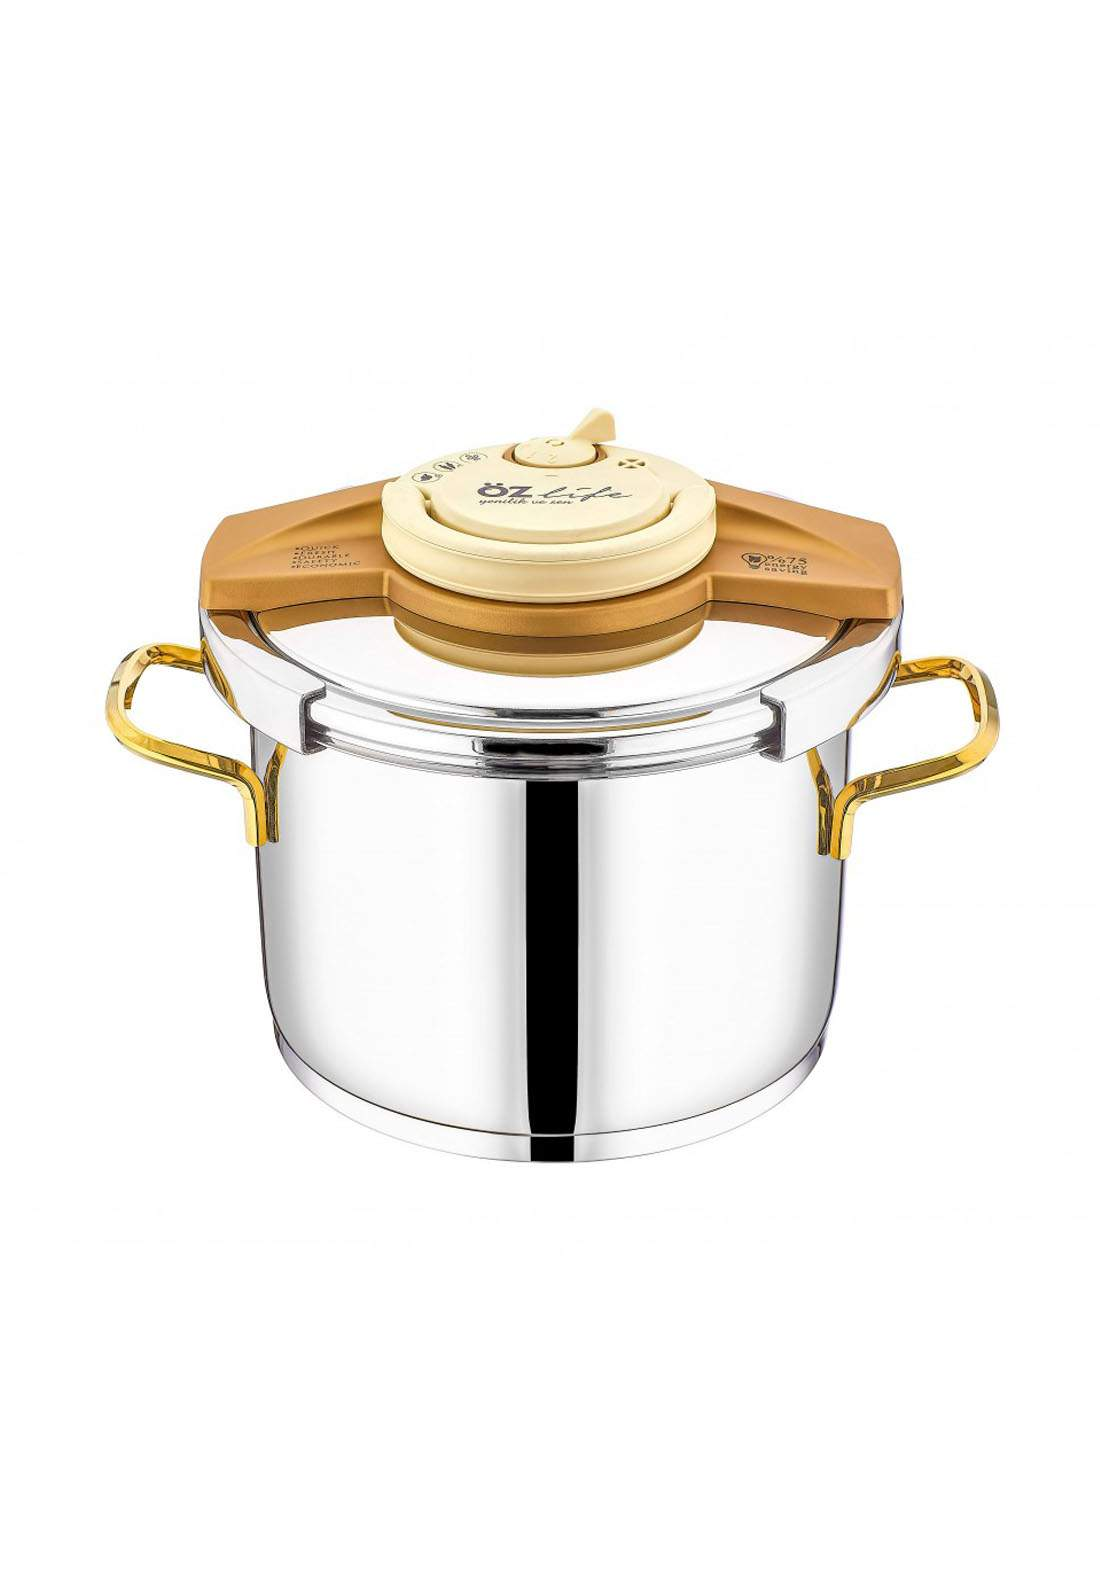 Ozlife Pressure Cooker Gala Gold 2 Piece   قدر ضغط